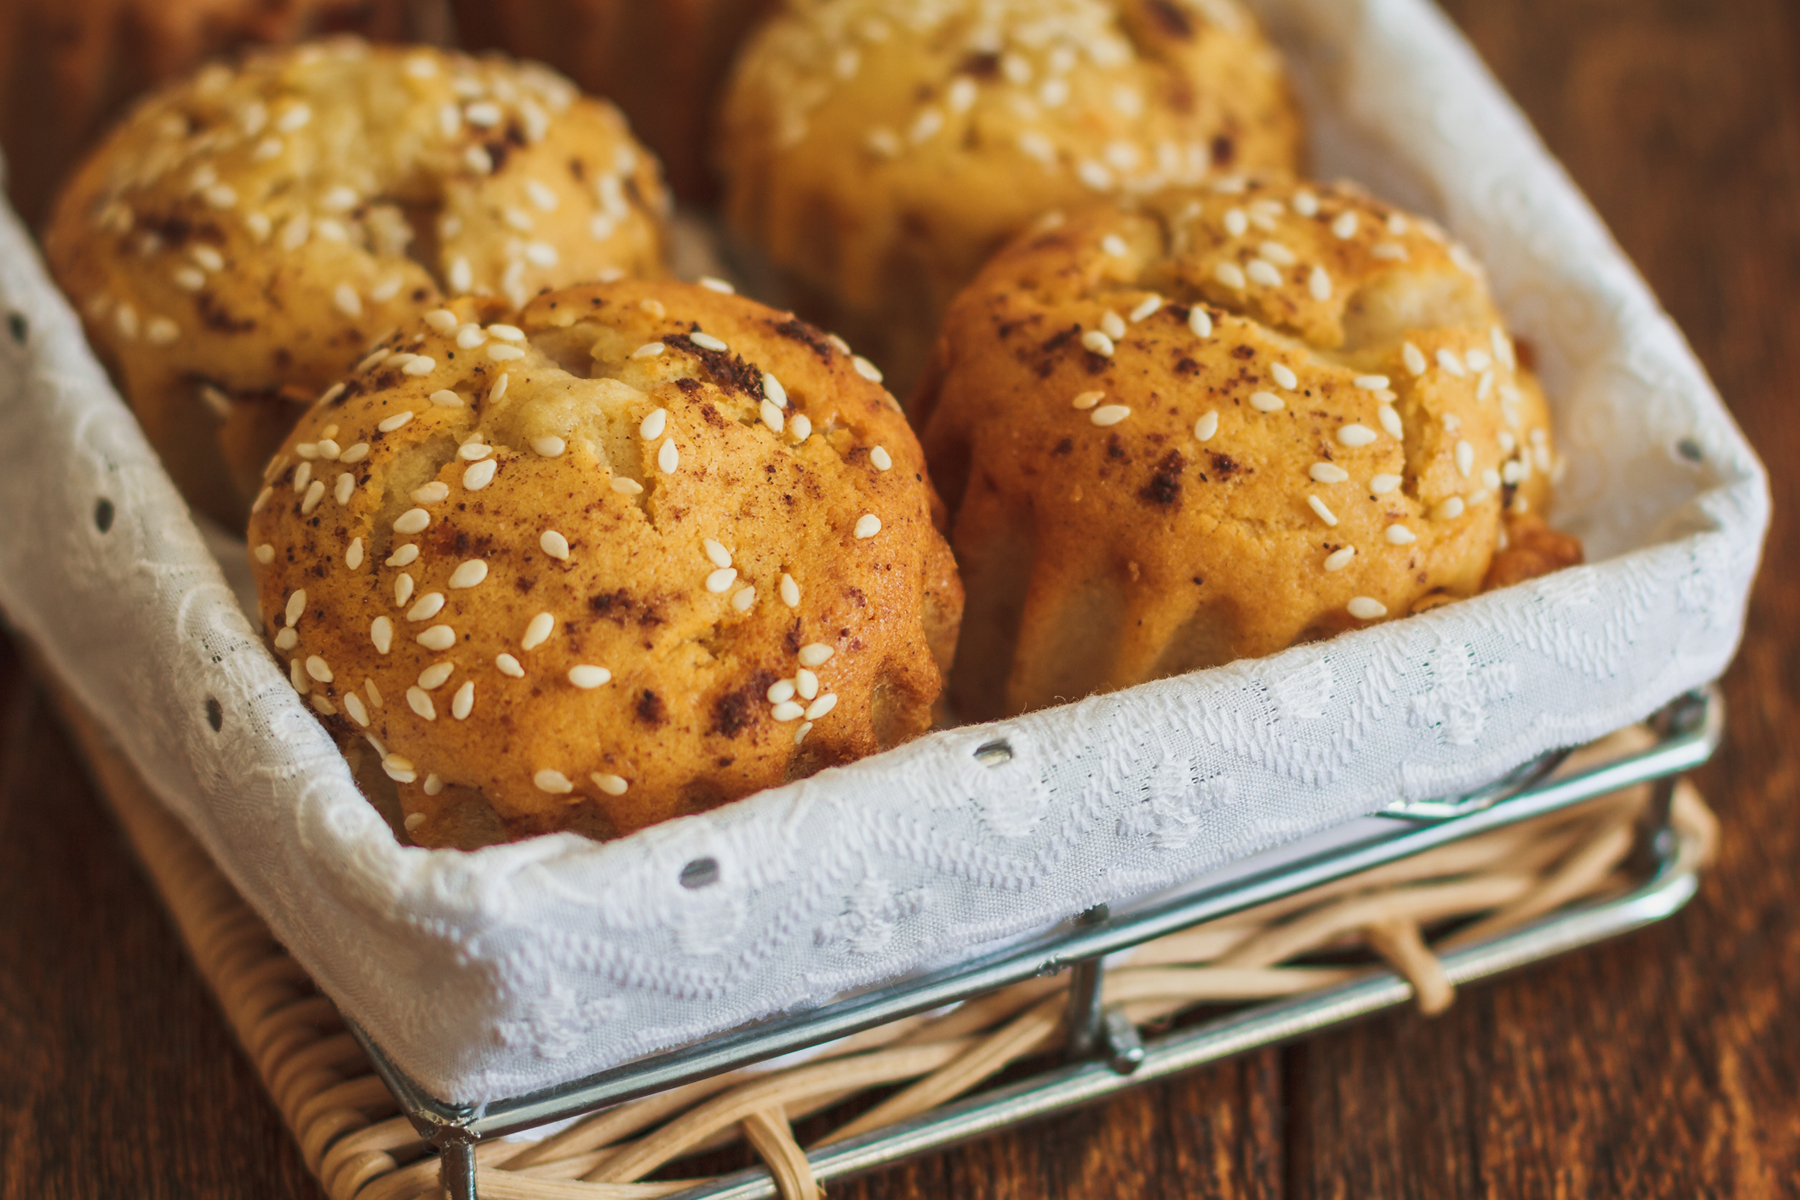 Apple Sesame Spice Muffins with Sesame Oat Streusel Topping